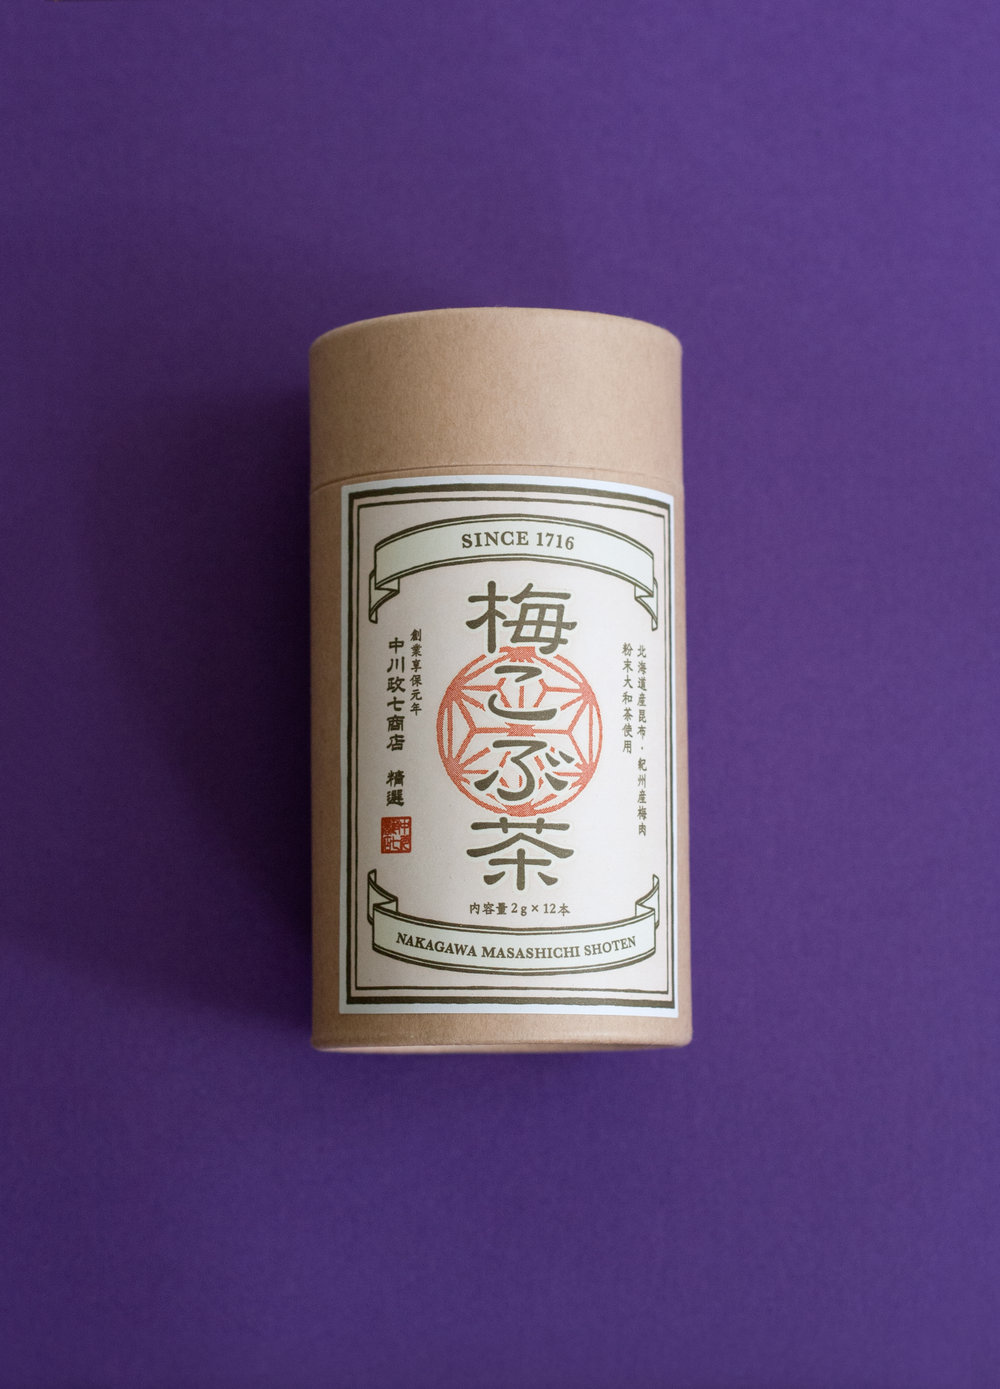 Plum tea package by Nakagawa Masashichi Shoten. Their business dates back to 1716, supplying special Goyohin to Tokugawa government. 中川政七商店